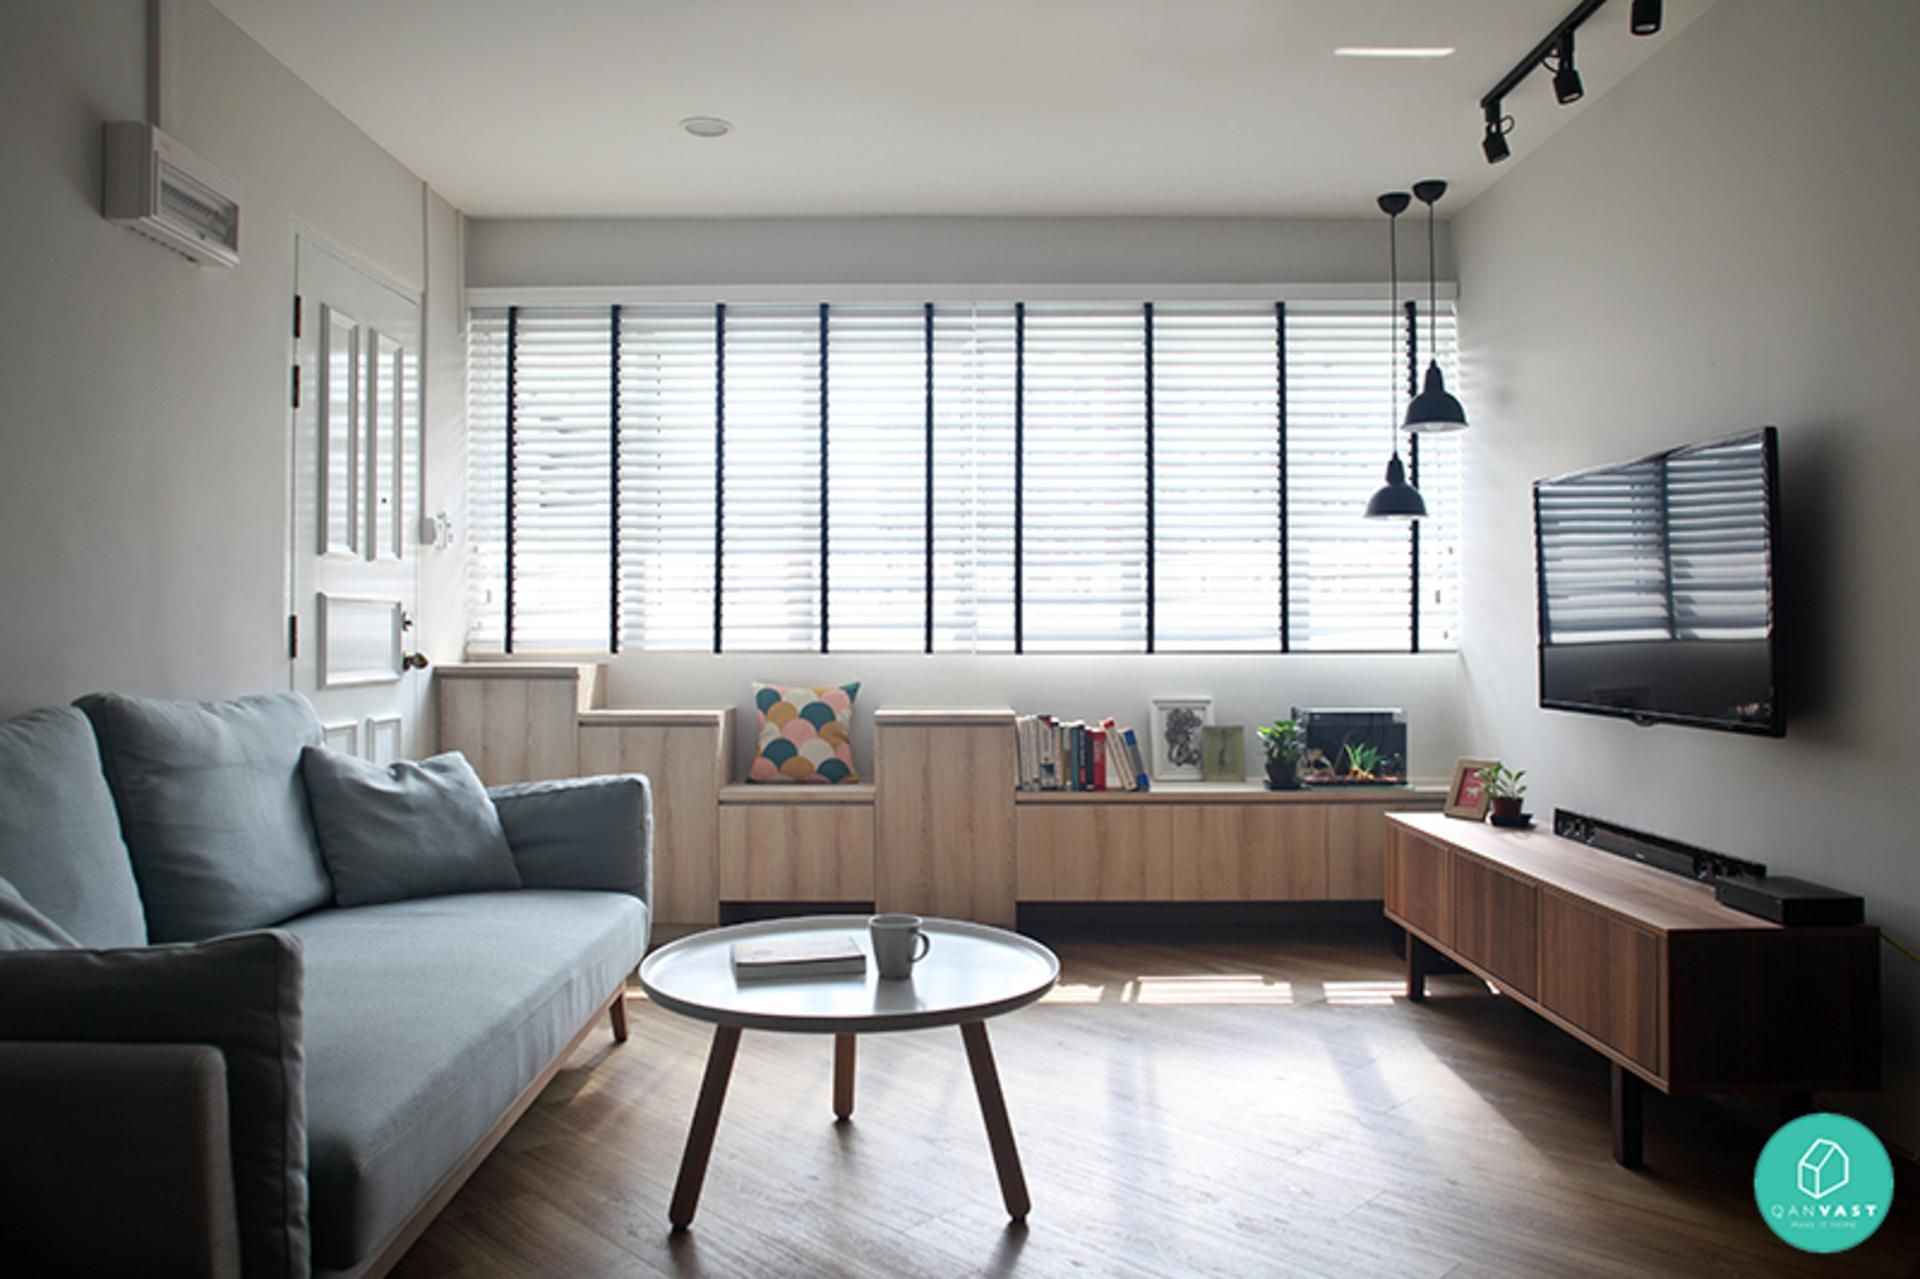 Maximise space in your small home with these 4 easy handy steps.